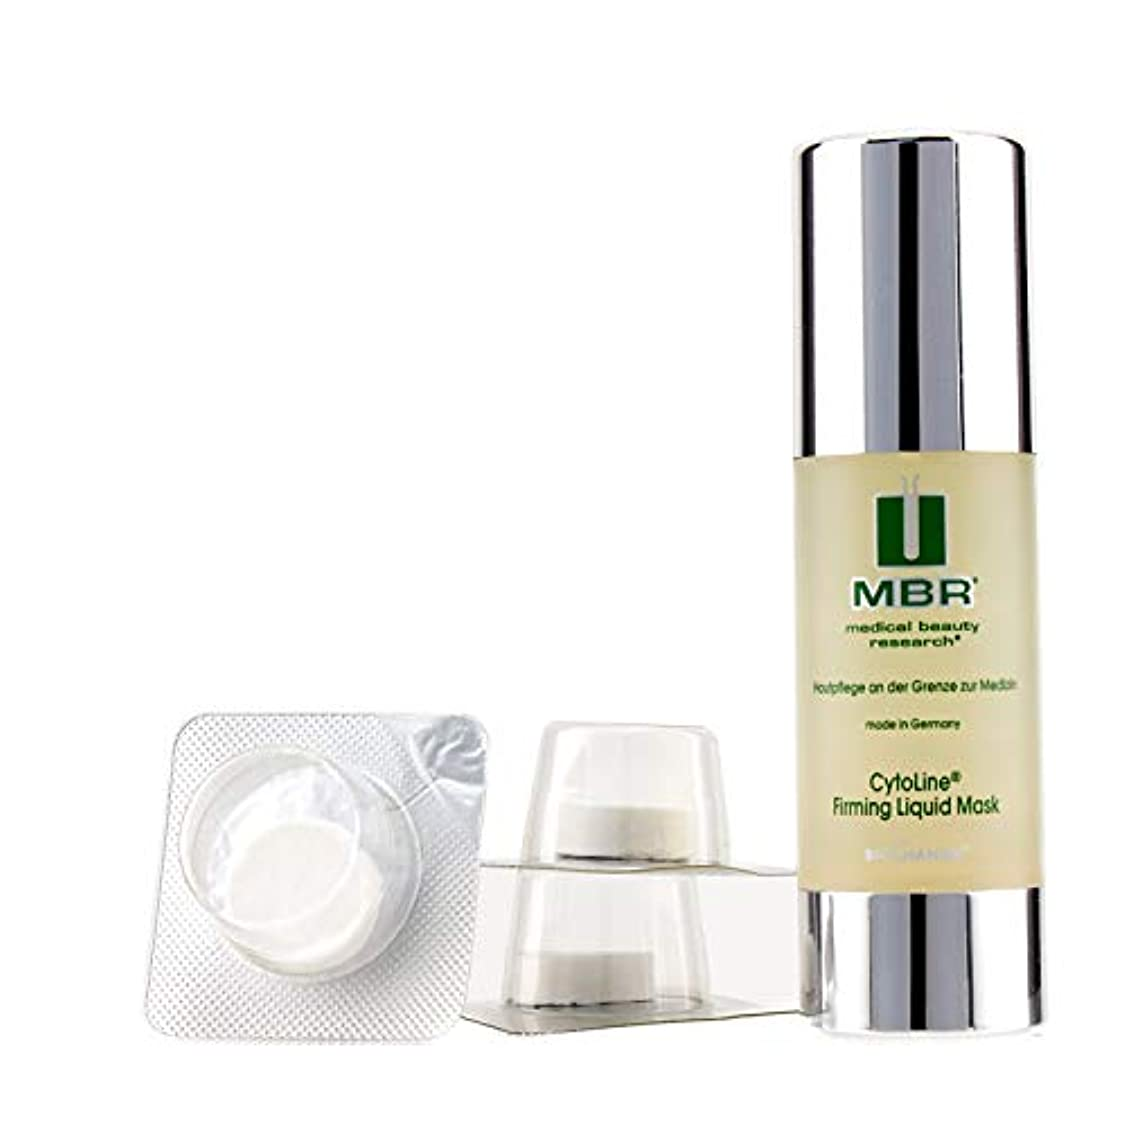 イタリアのスパン幸運なことにMBR Medical Beauty Research BioChange CytoLine Firming Liquid Mask 6applications並行輸入品